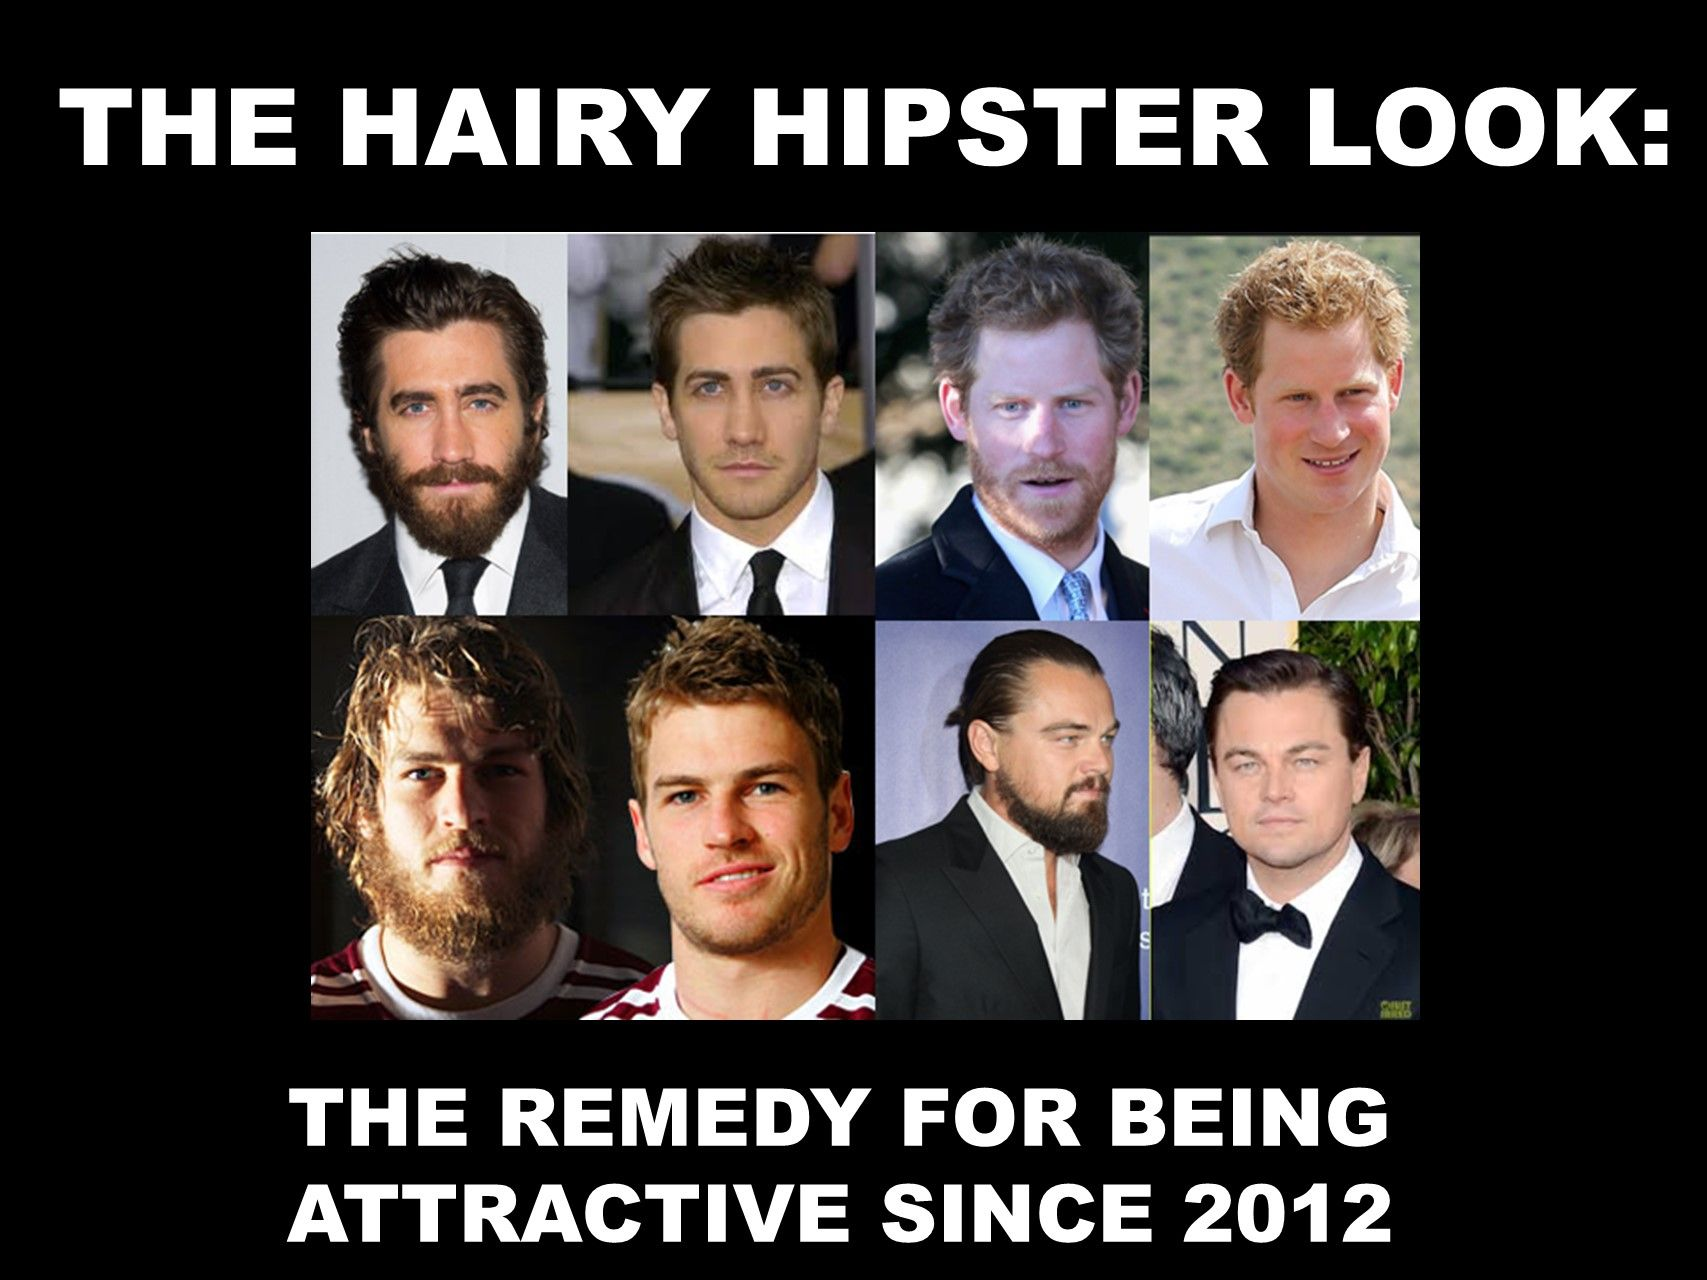 I am getting really sick of all the facial hair men are